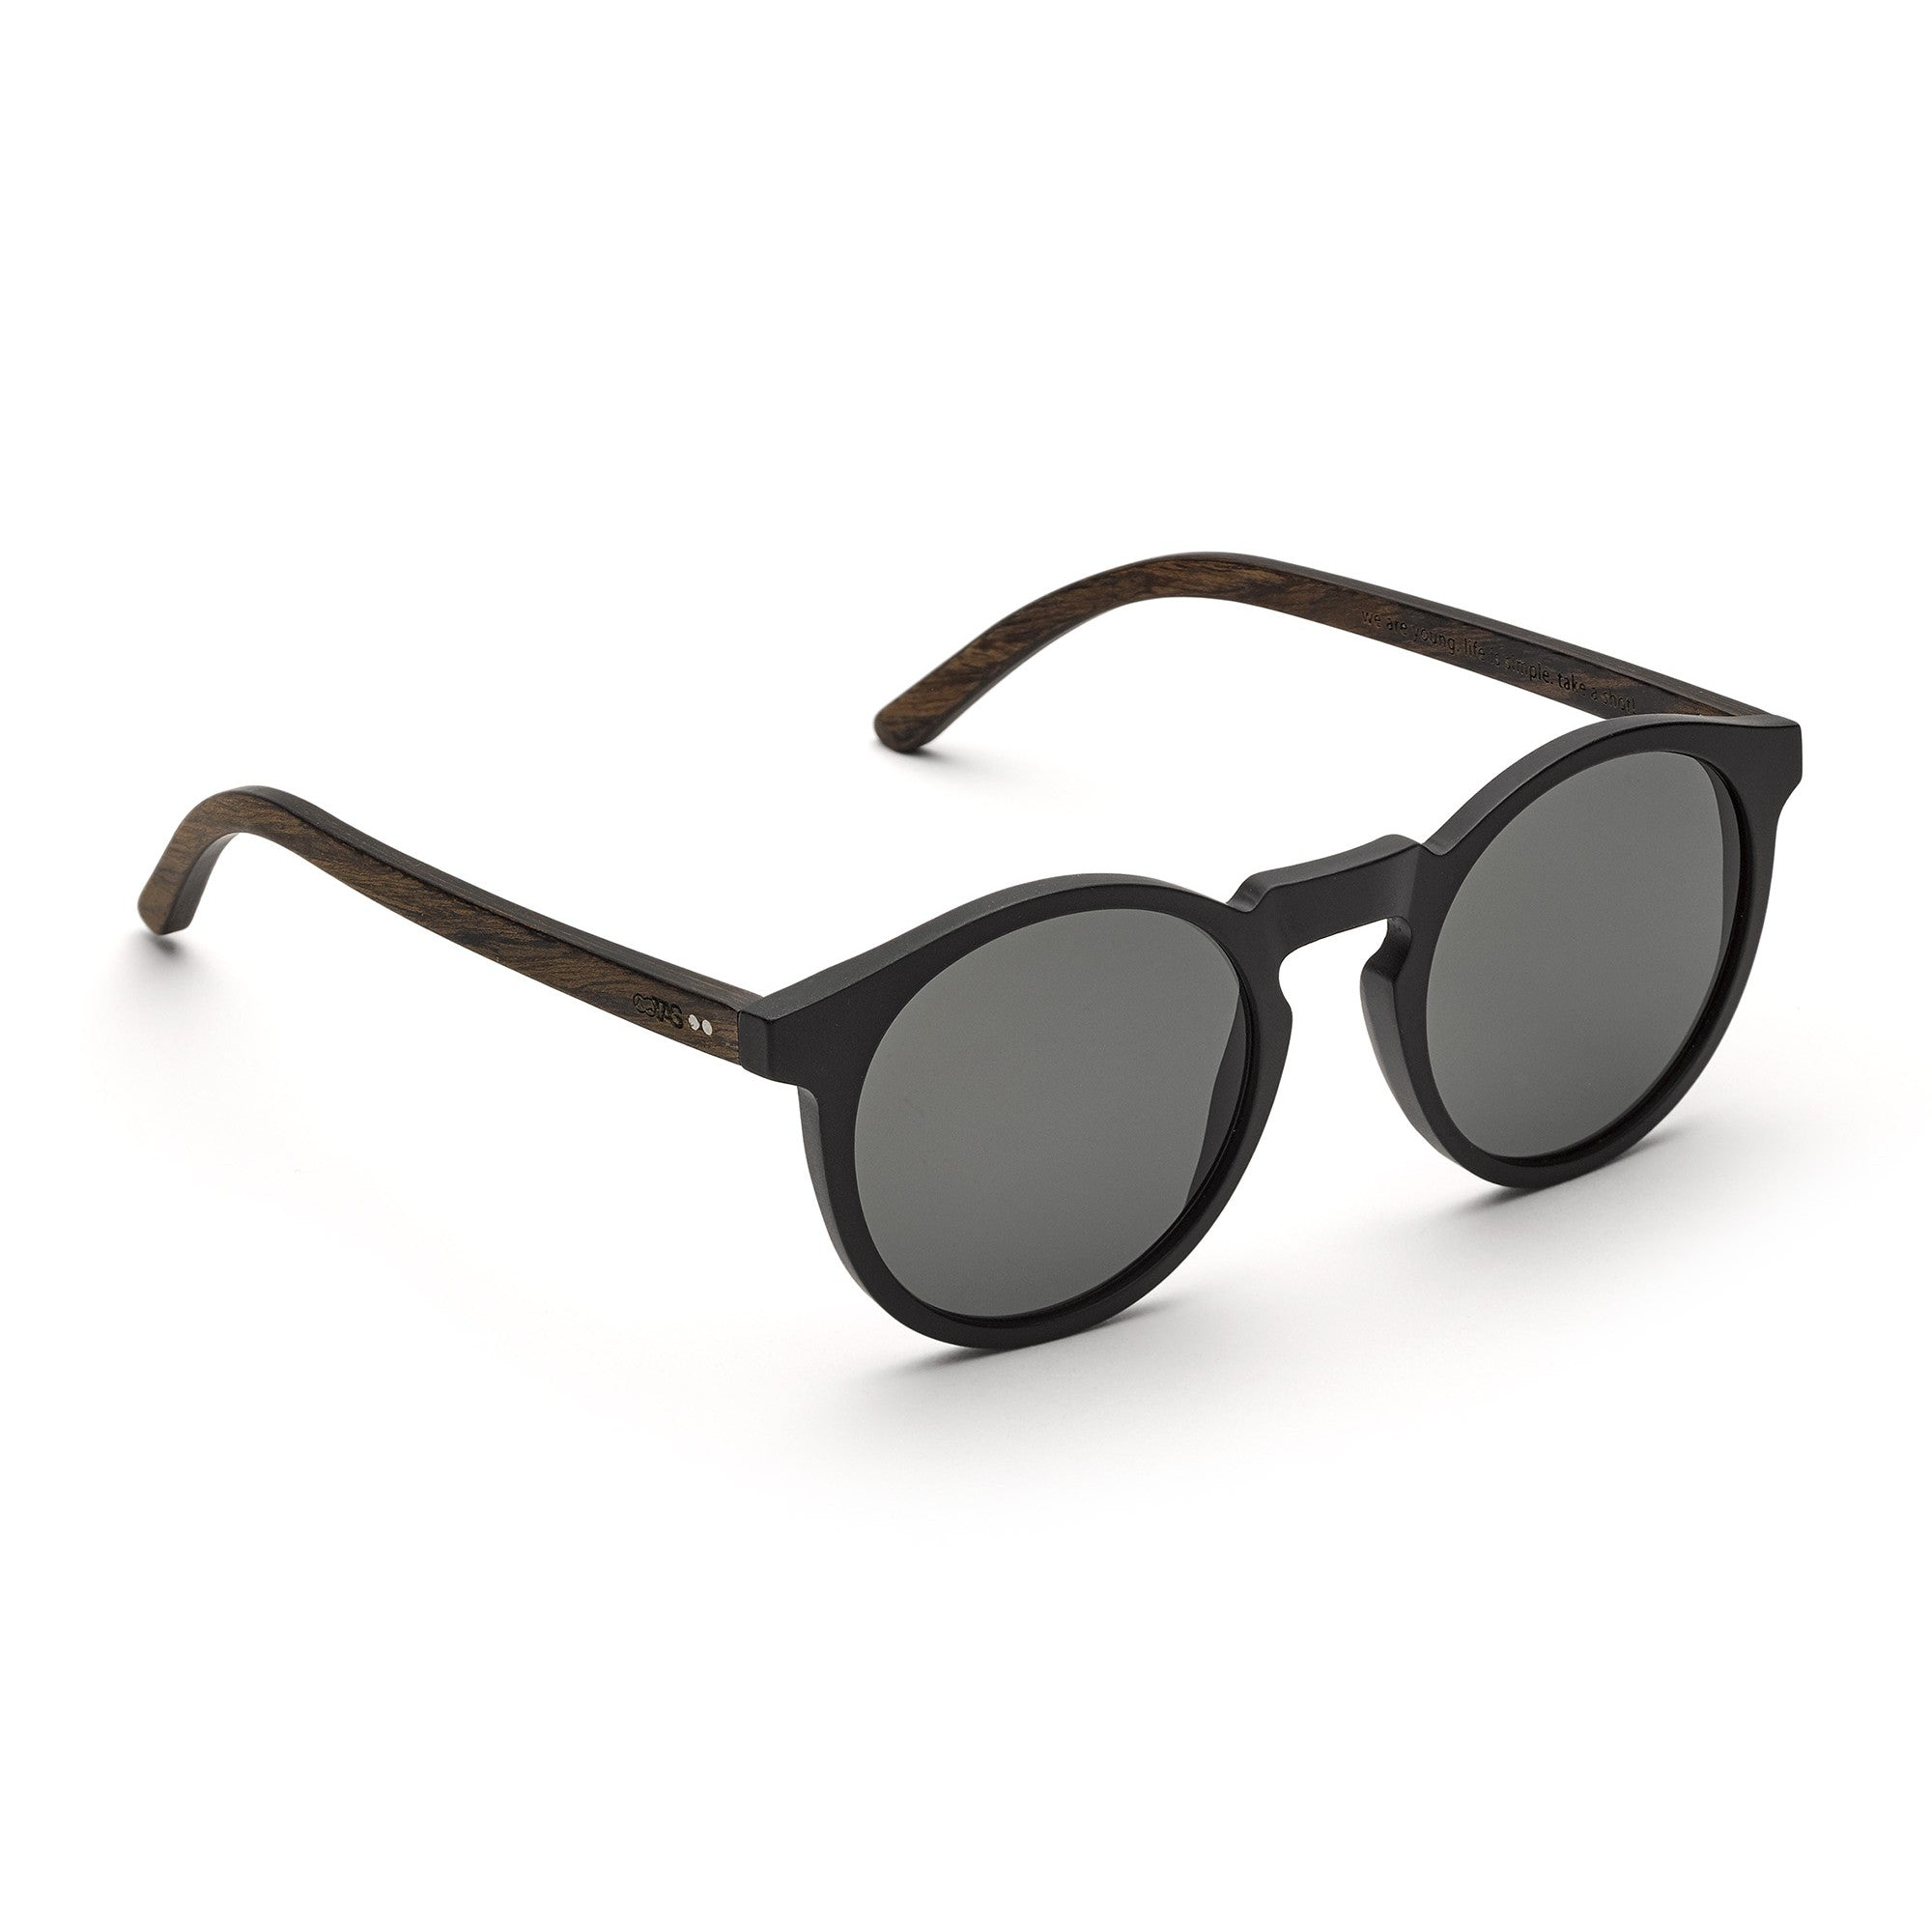 b8c6735c2aed Lukas: Walnussholz (Holz-Sonnenbrille)